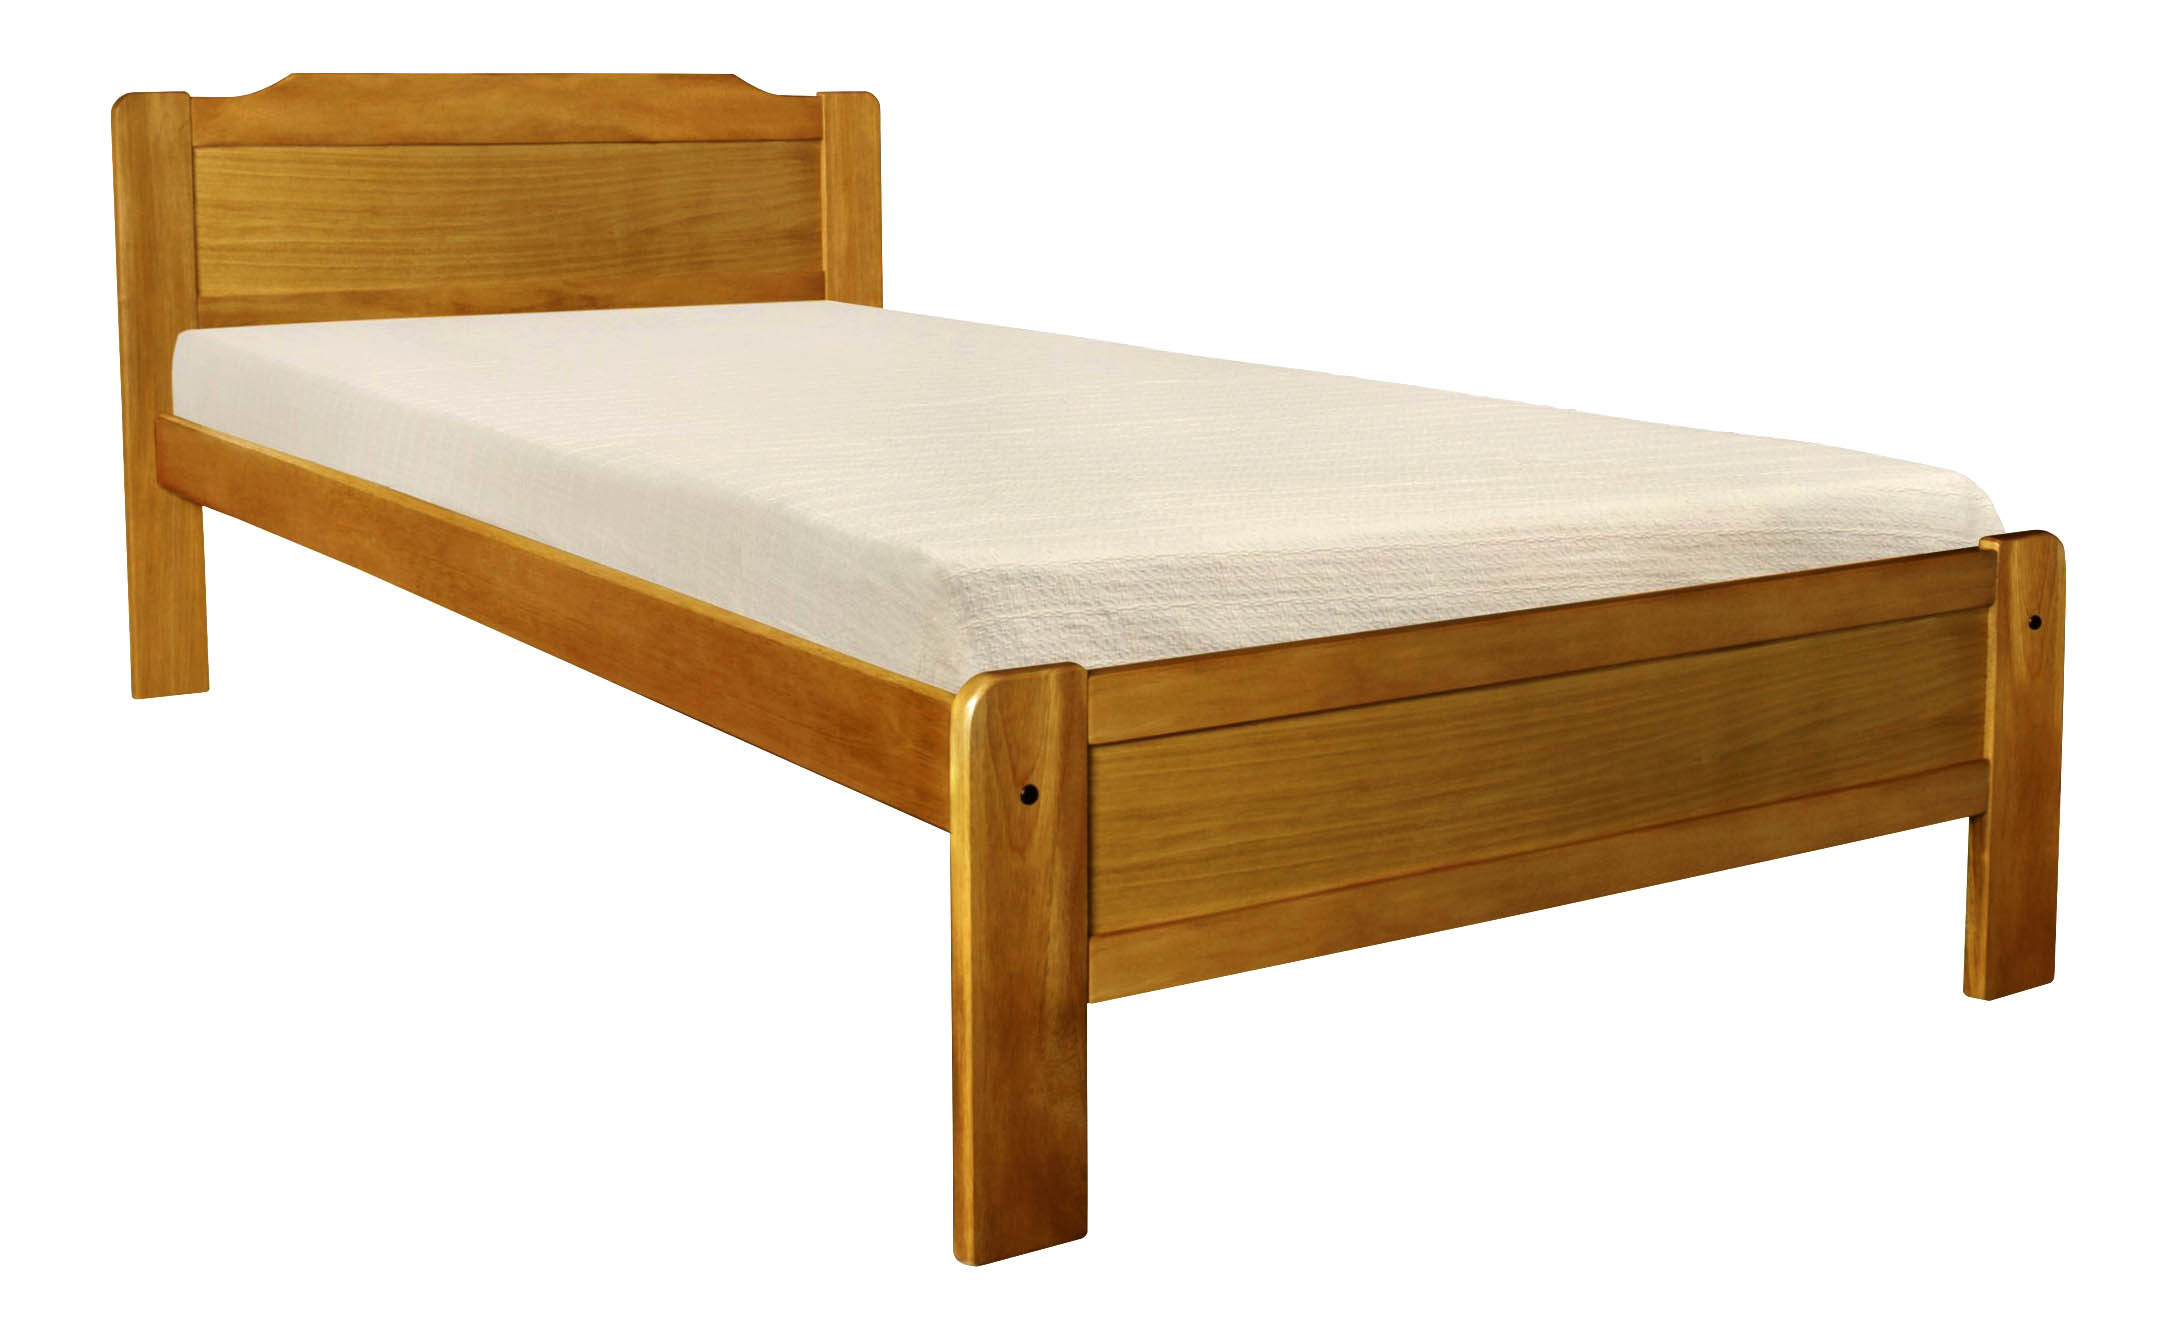 Cheap Wooden Bed Frames Solna Wooden Bed Frame In Single Sized